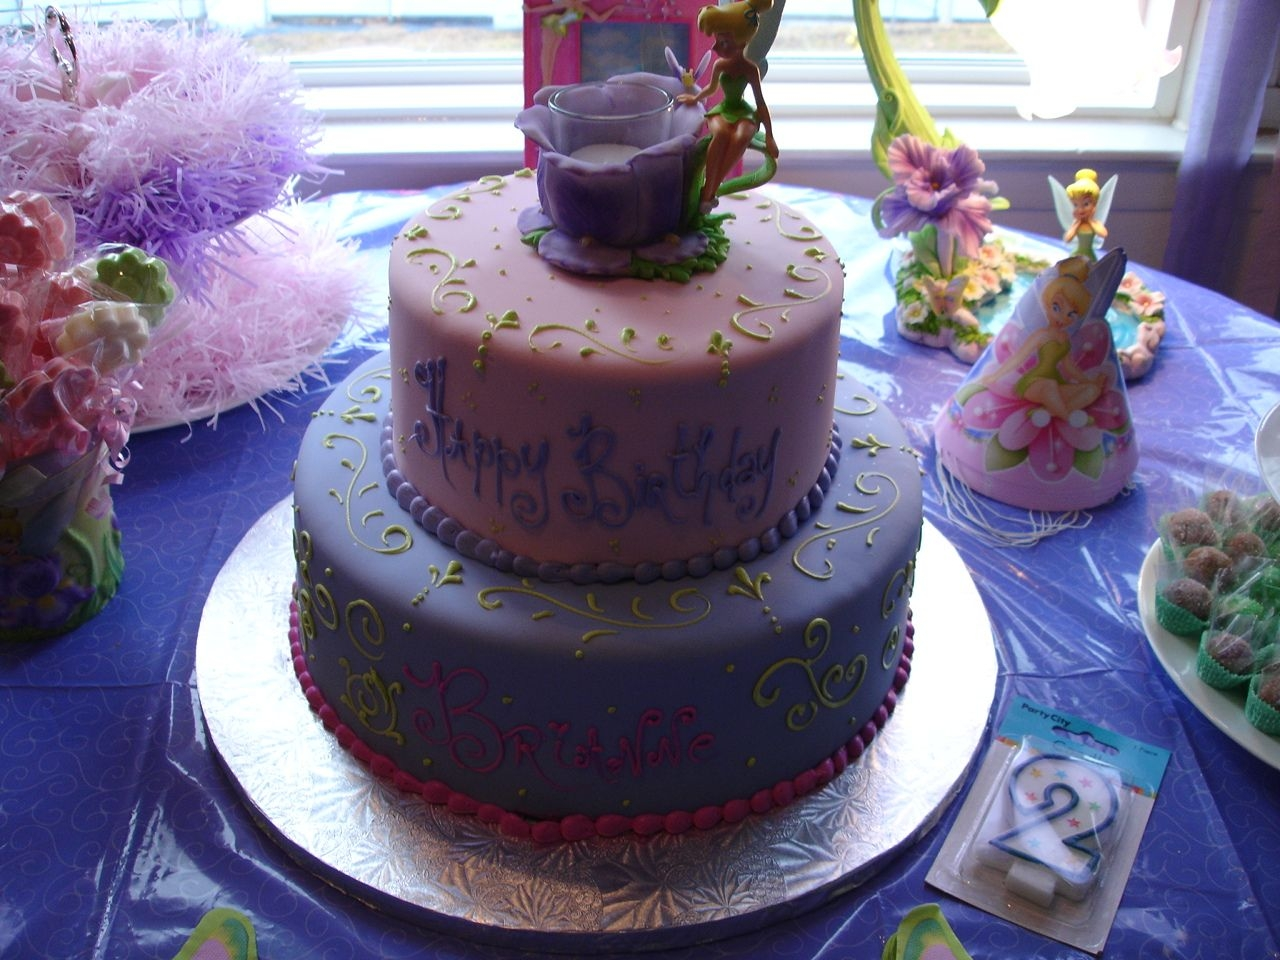 Tinkerbell Cake  This was a Tinkerbell cake done for my daughter's 2nd birthday party. I didnt' do it myself, but I loved what the pastry shop did...